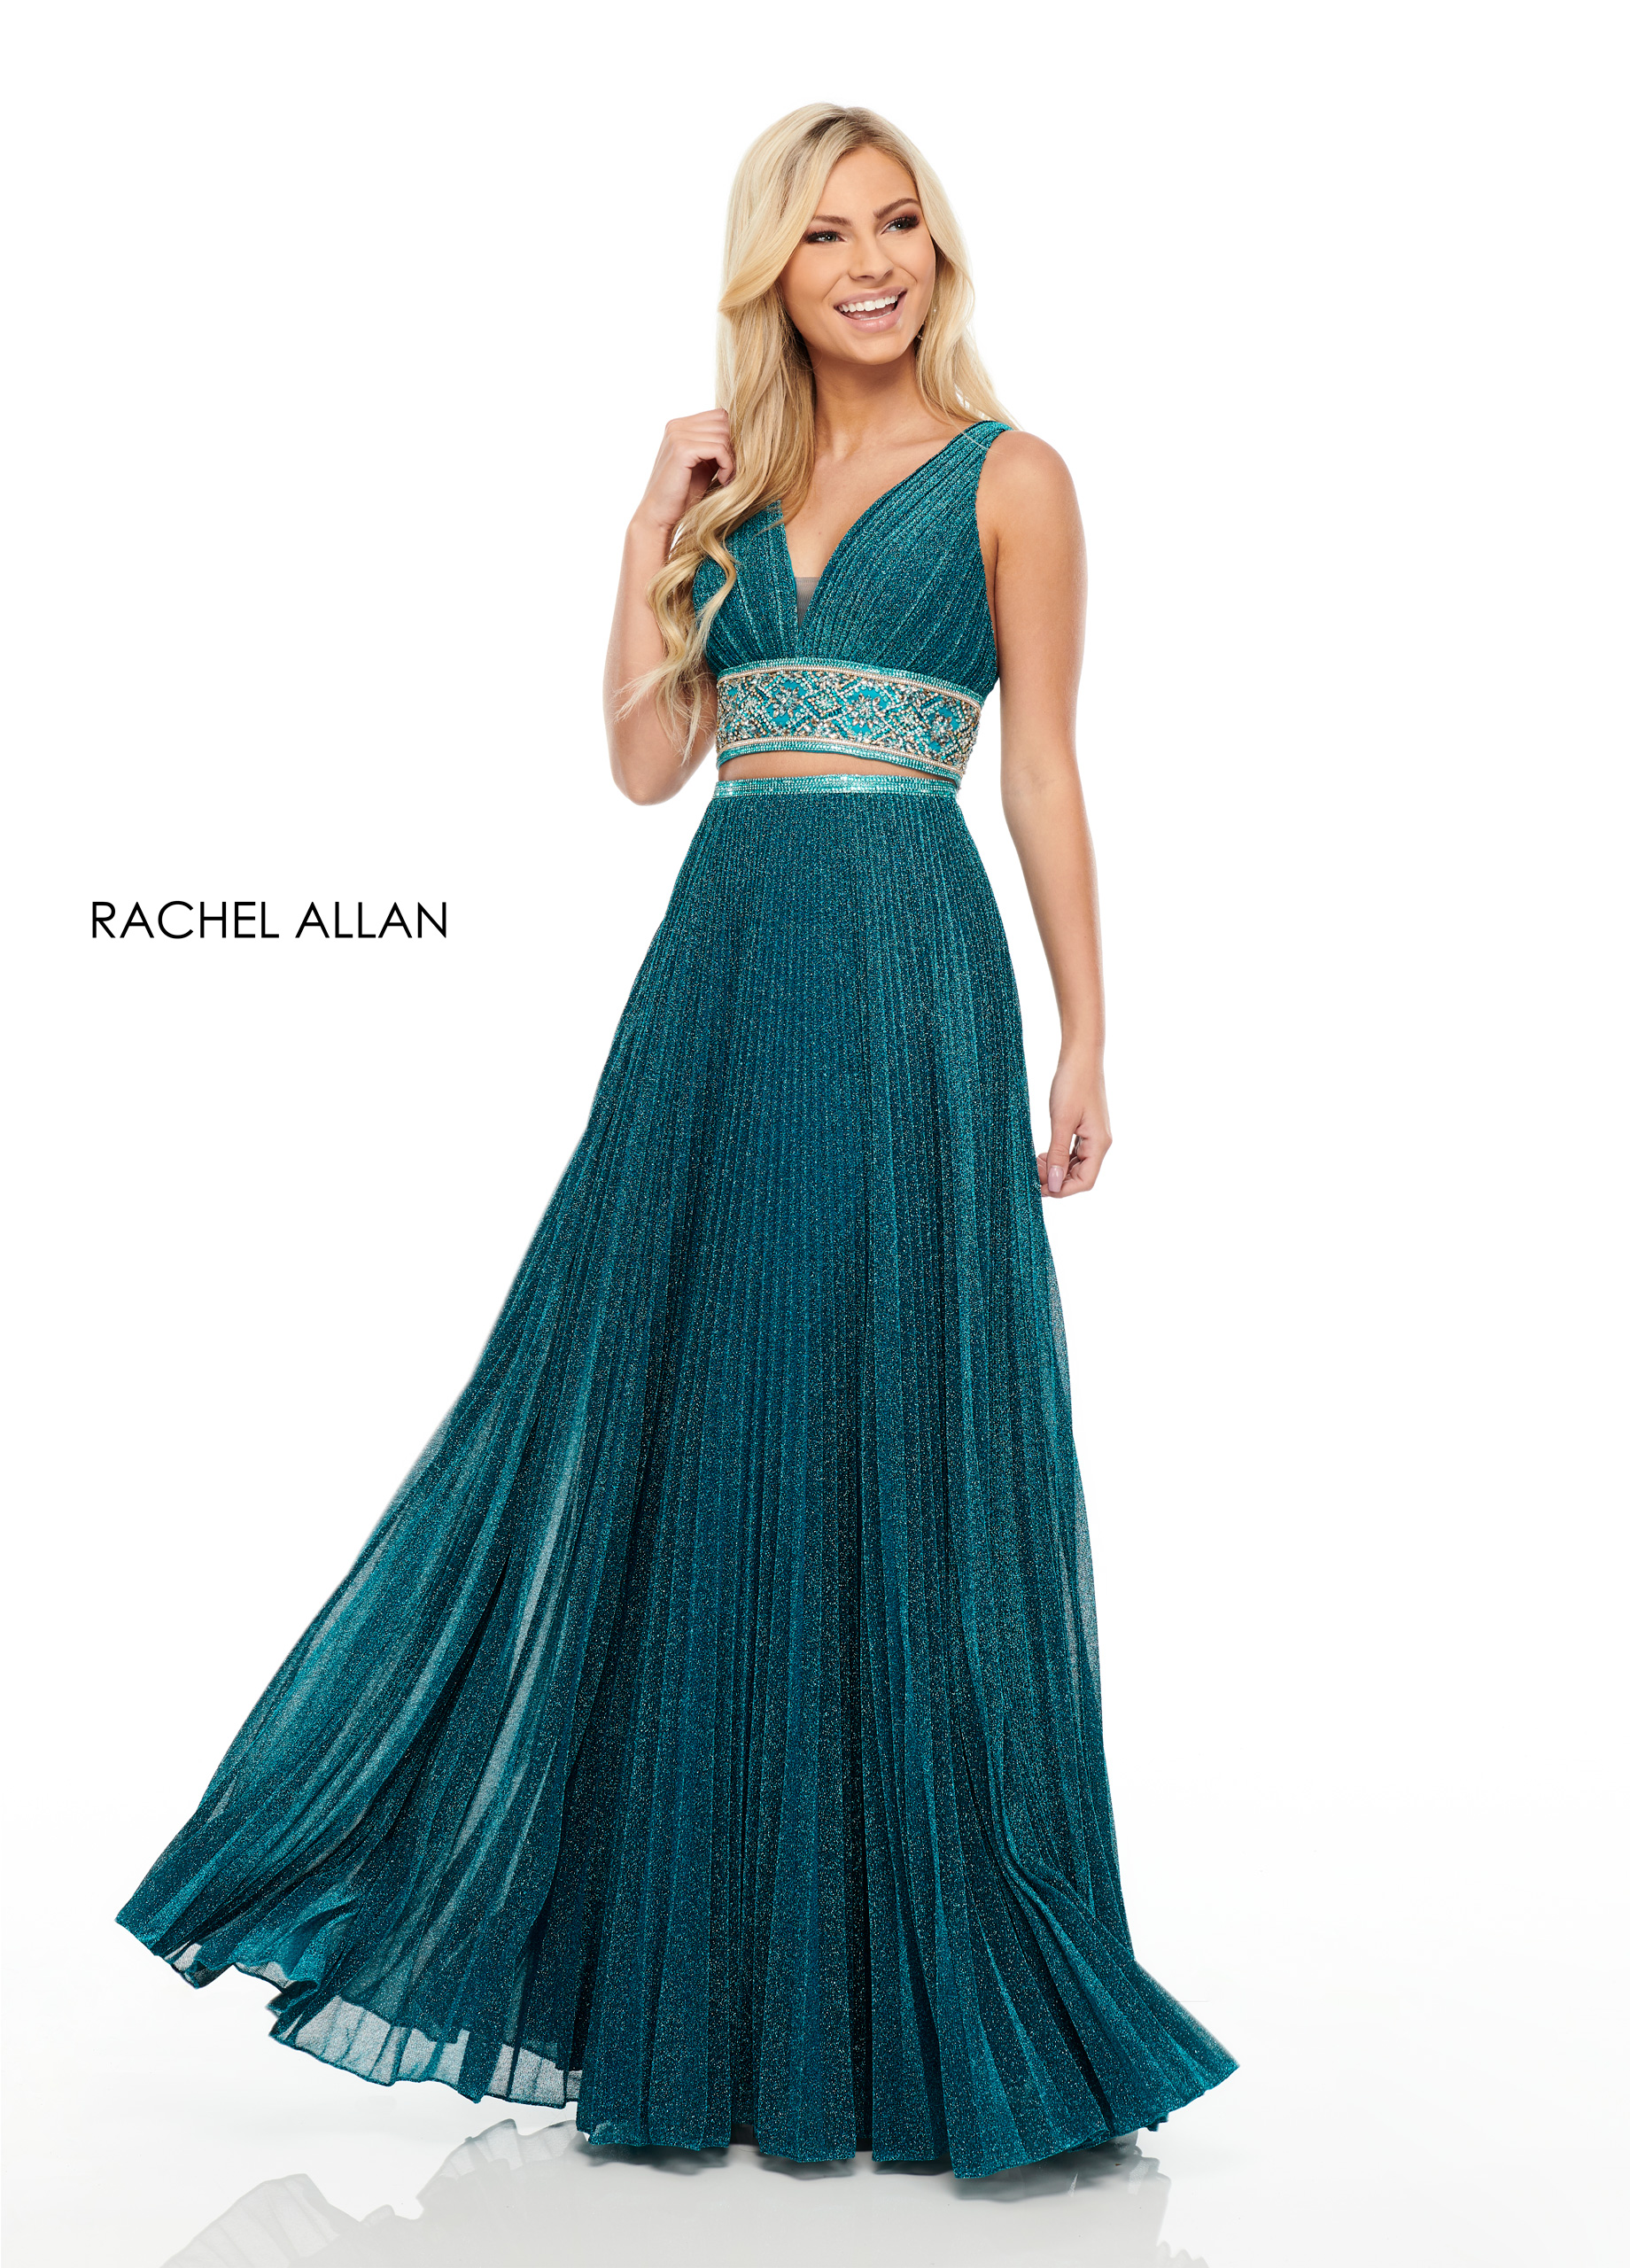 V-Neck Two-Piece Prom Dresses in Blue Color